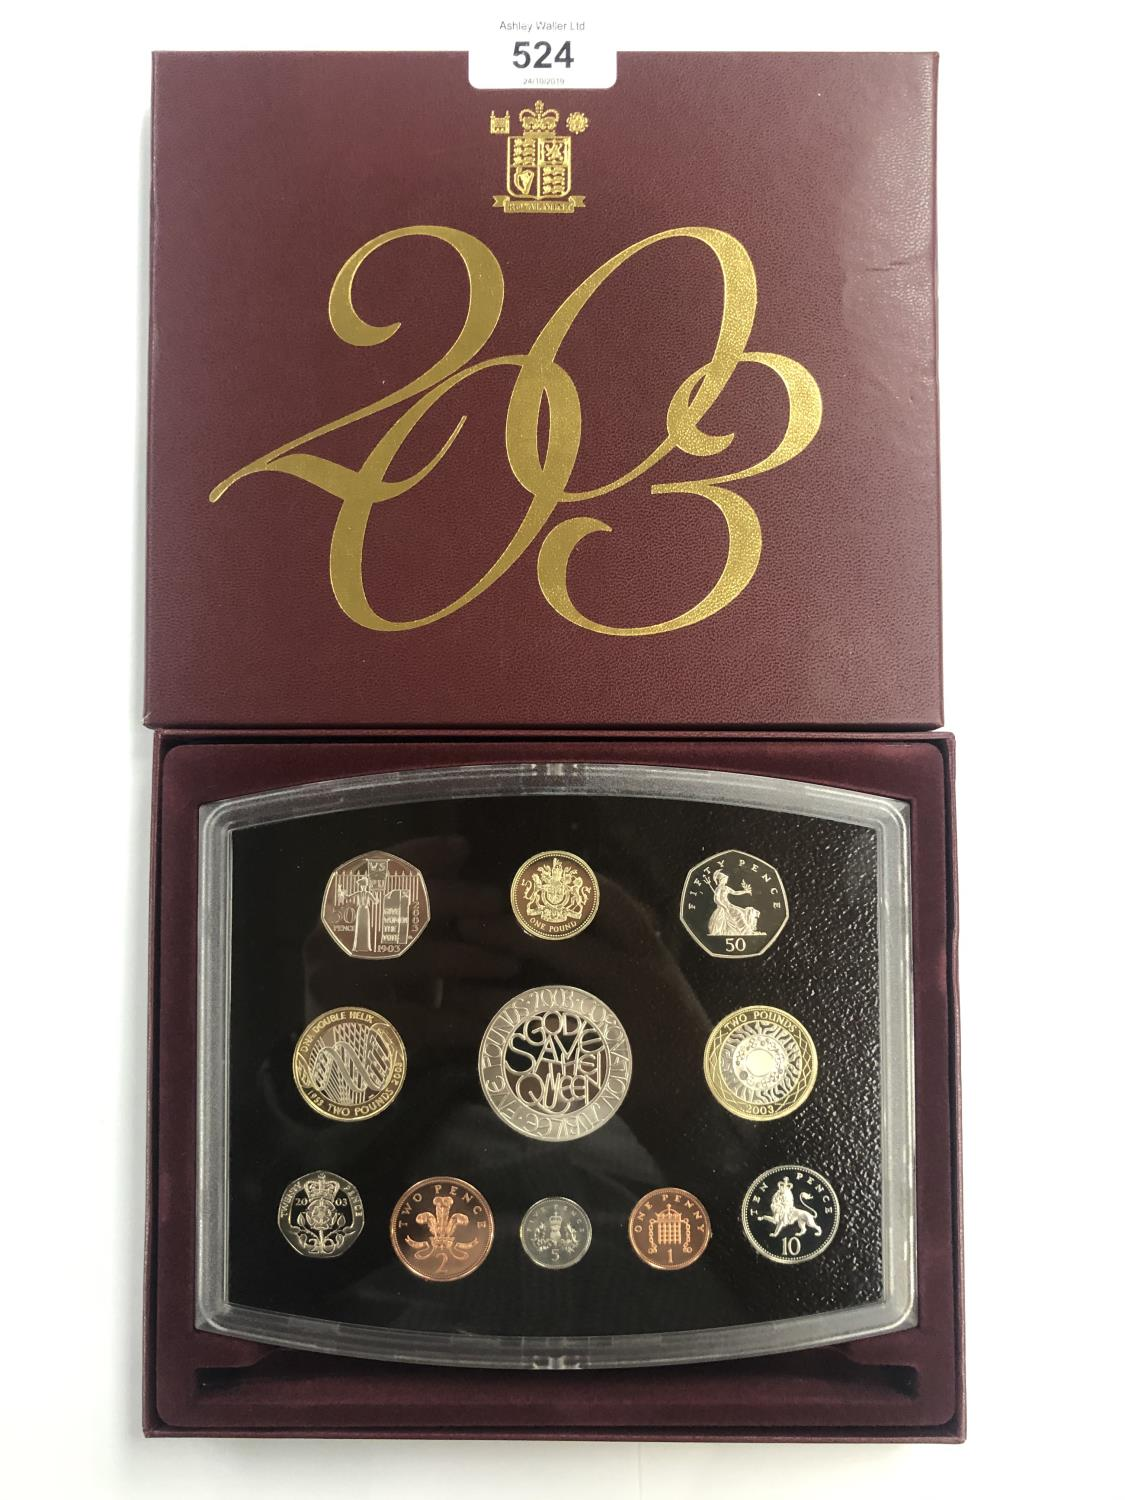 Lot 524 - 2003 ROYAL MINT UK PROOF 11 ? COIN YEAR SET , INCLUDING SUFFRAGETTE 50P AND DNA £2 . THE SET IS